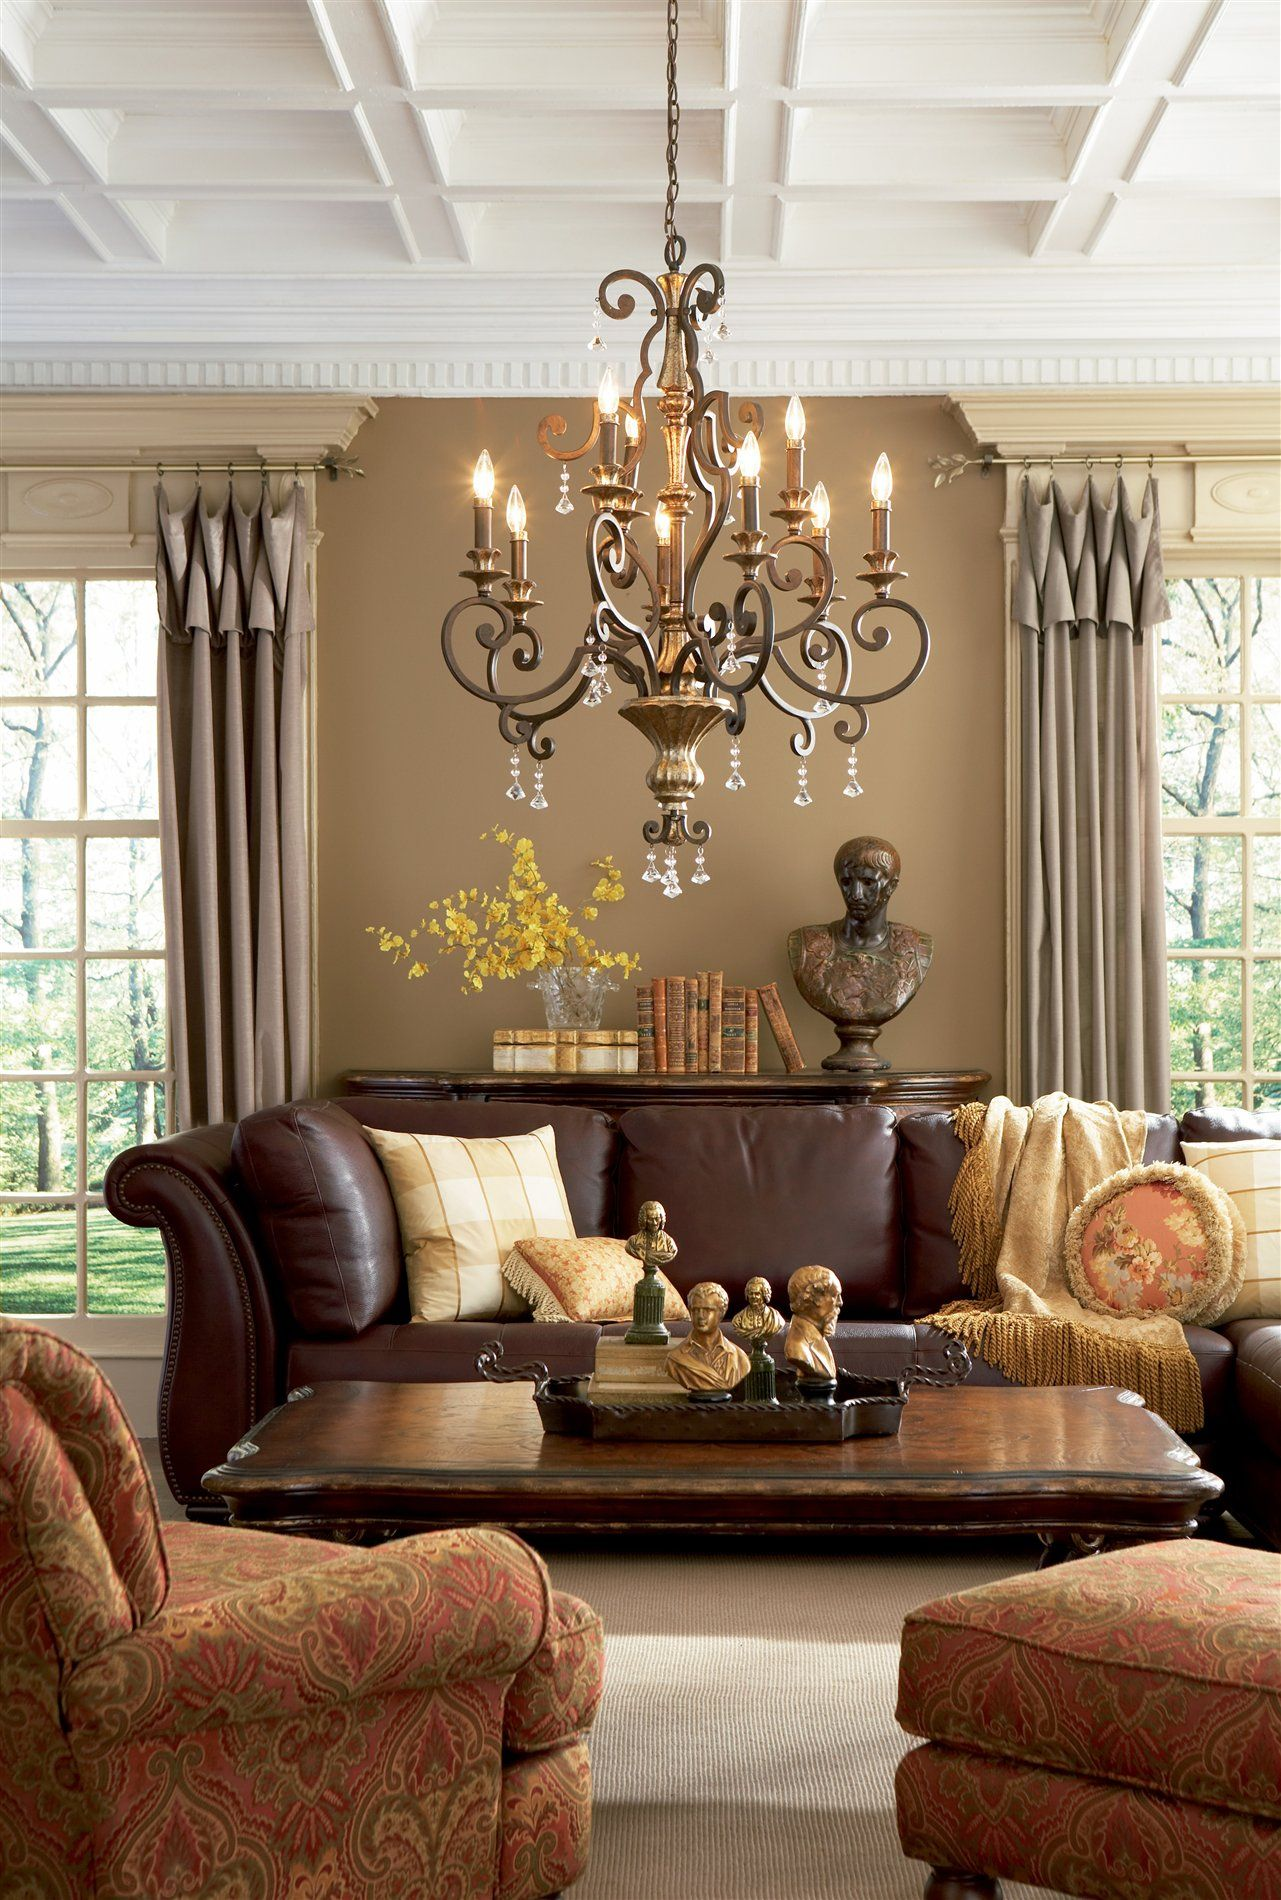 Quoizel Mq5009hl Marquette Traditional Chandelier Qz Mq5009hl Beautiful Living Rooms Brown Living Room House Interior